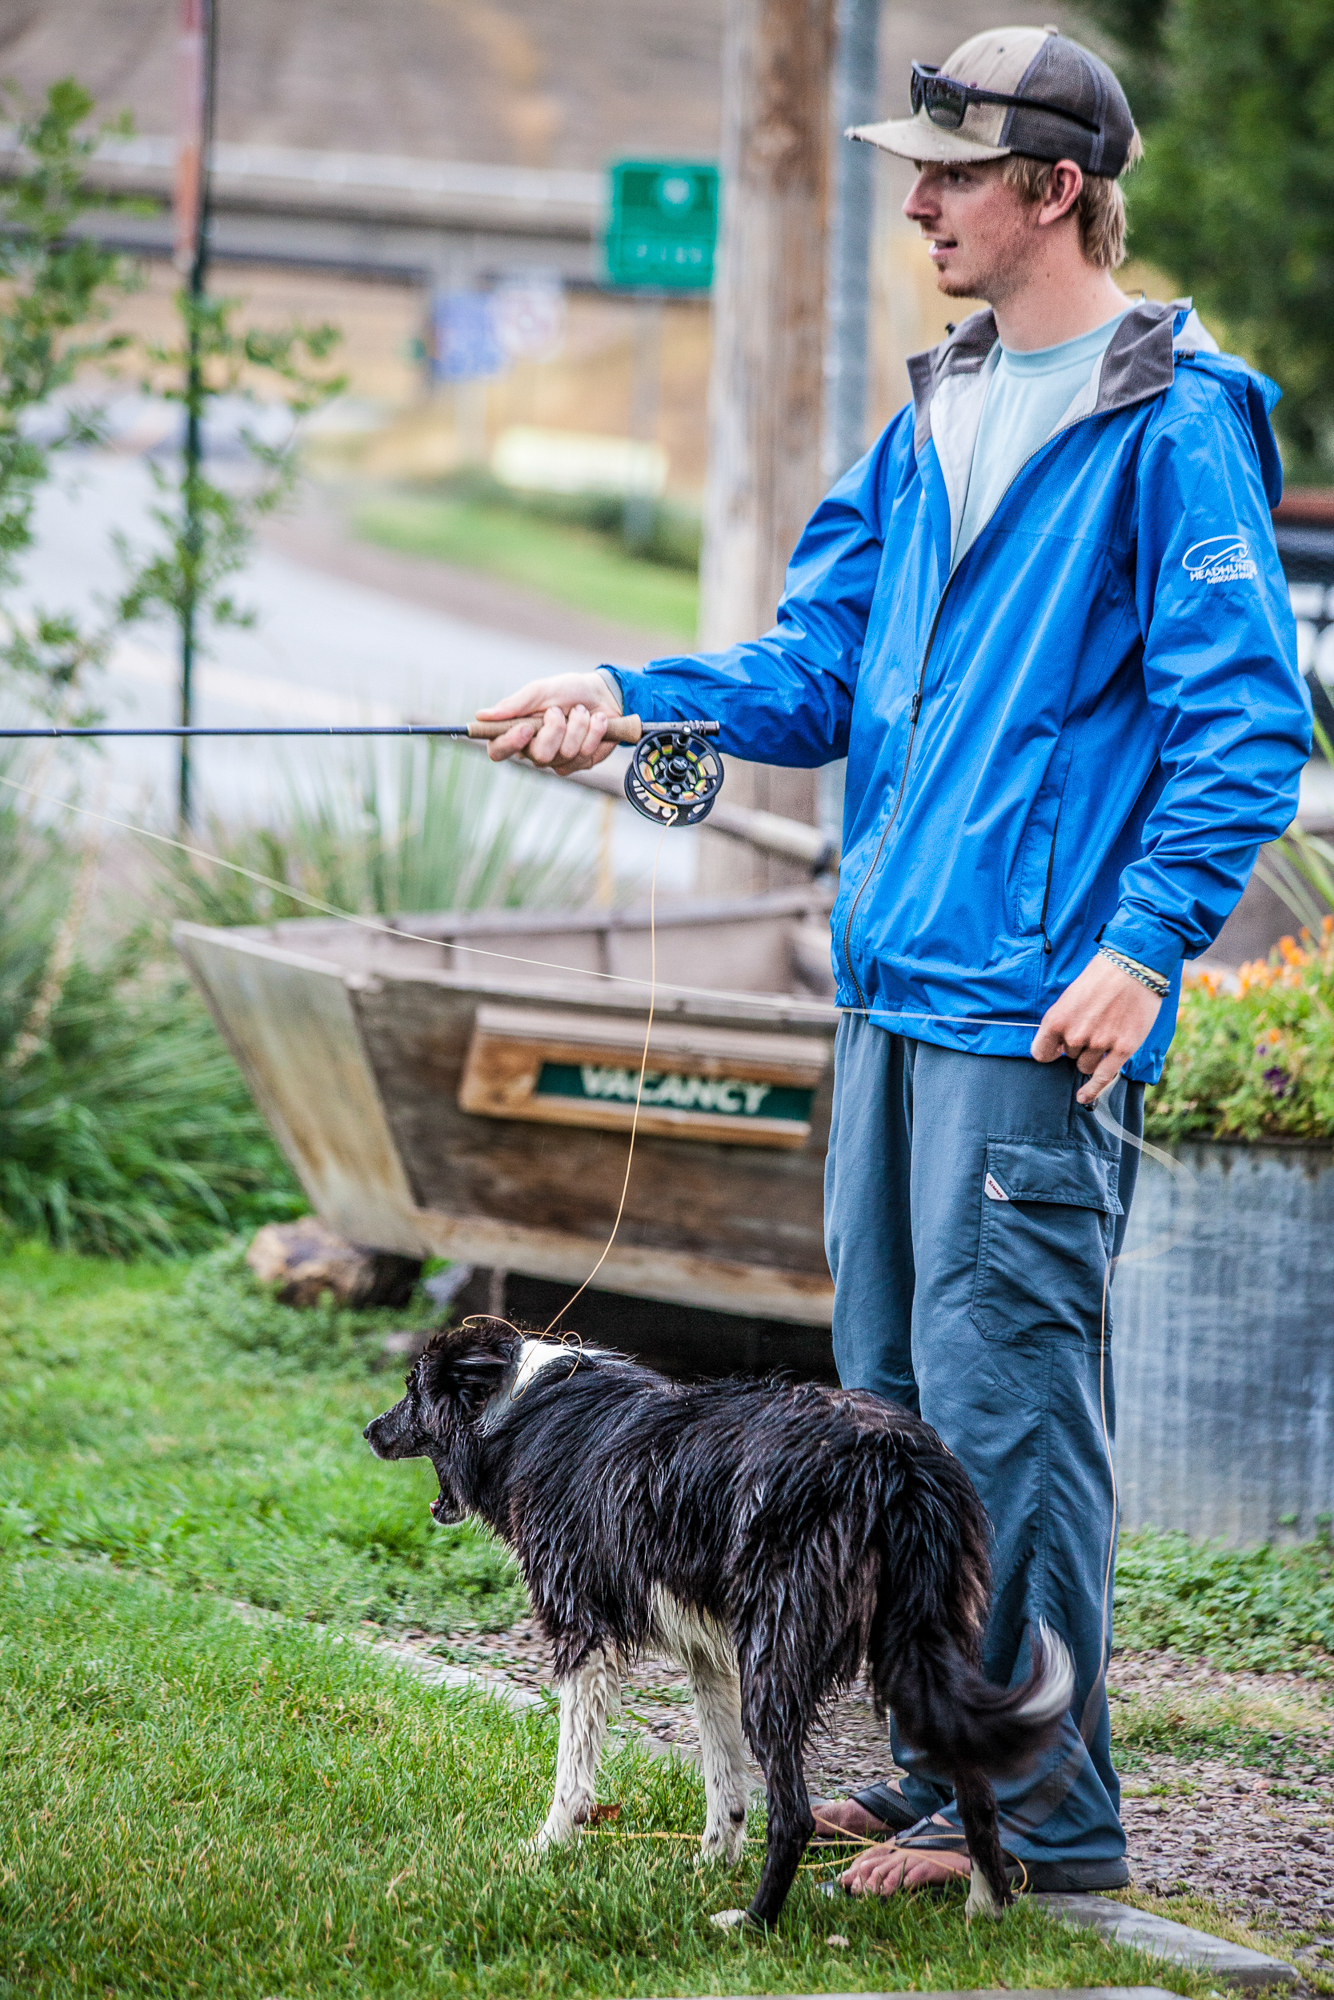 Who needs a casting basket when they have a Border Collie? Headhunters Shop rat Jake Gates logs his daily 30 minutes at the Craig Casting Club, aided by mower-herding stray-come-shop-dog Marley.